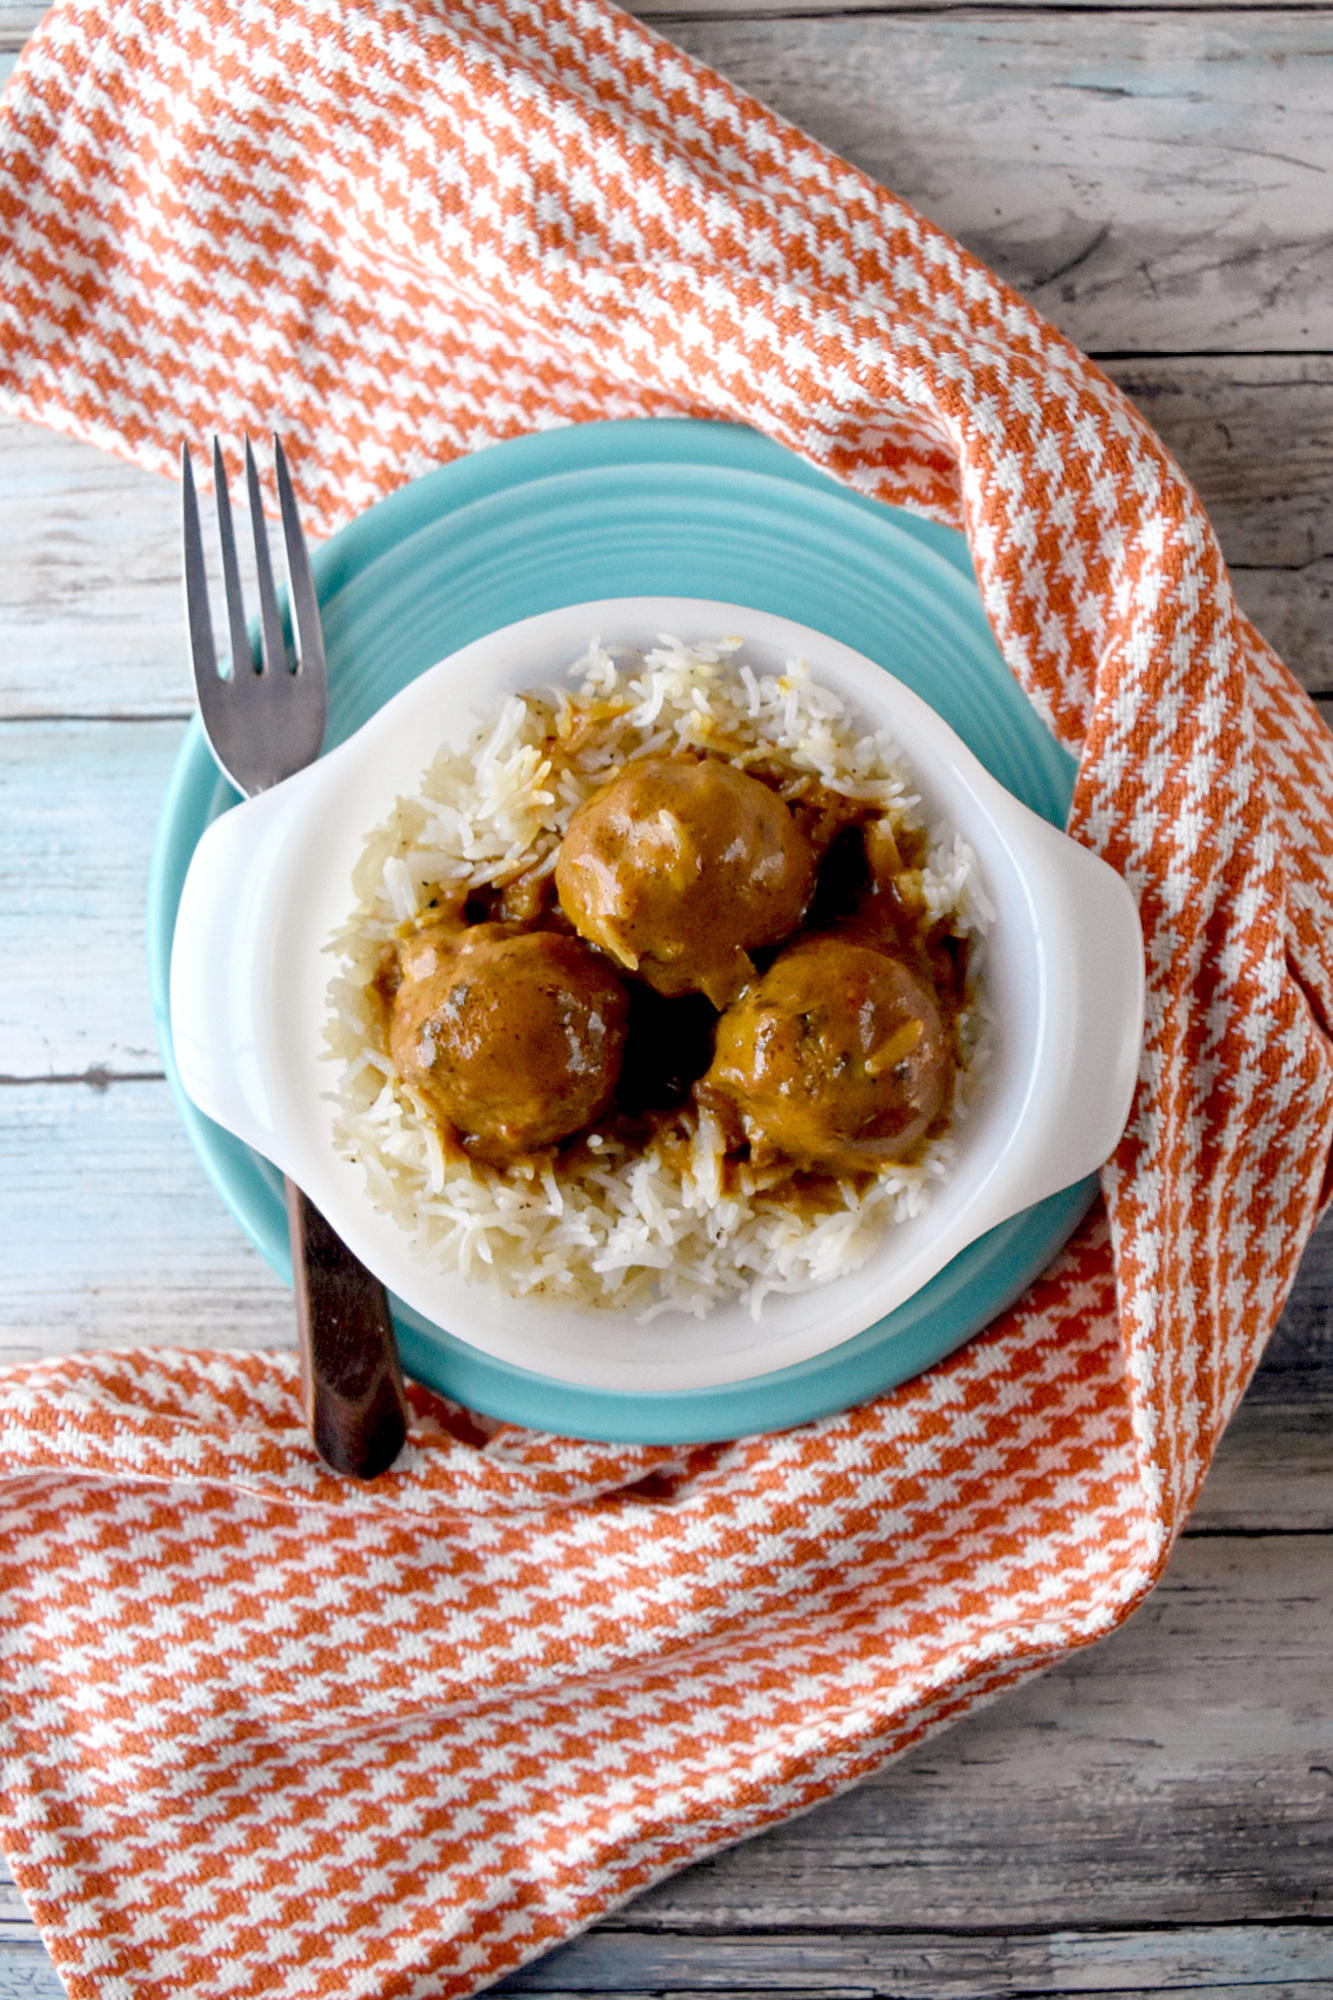 Thai Coconut Turkey Meatballs are packed with Thai flavor and creamy coconut goodness.  They're a quick and easy meal for any night of the week.  #eatcleanlivehappy #kevinsnaturalfoods #kevinsrecipechallenge